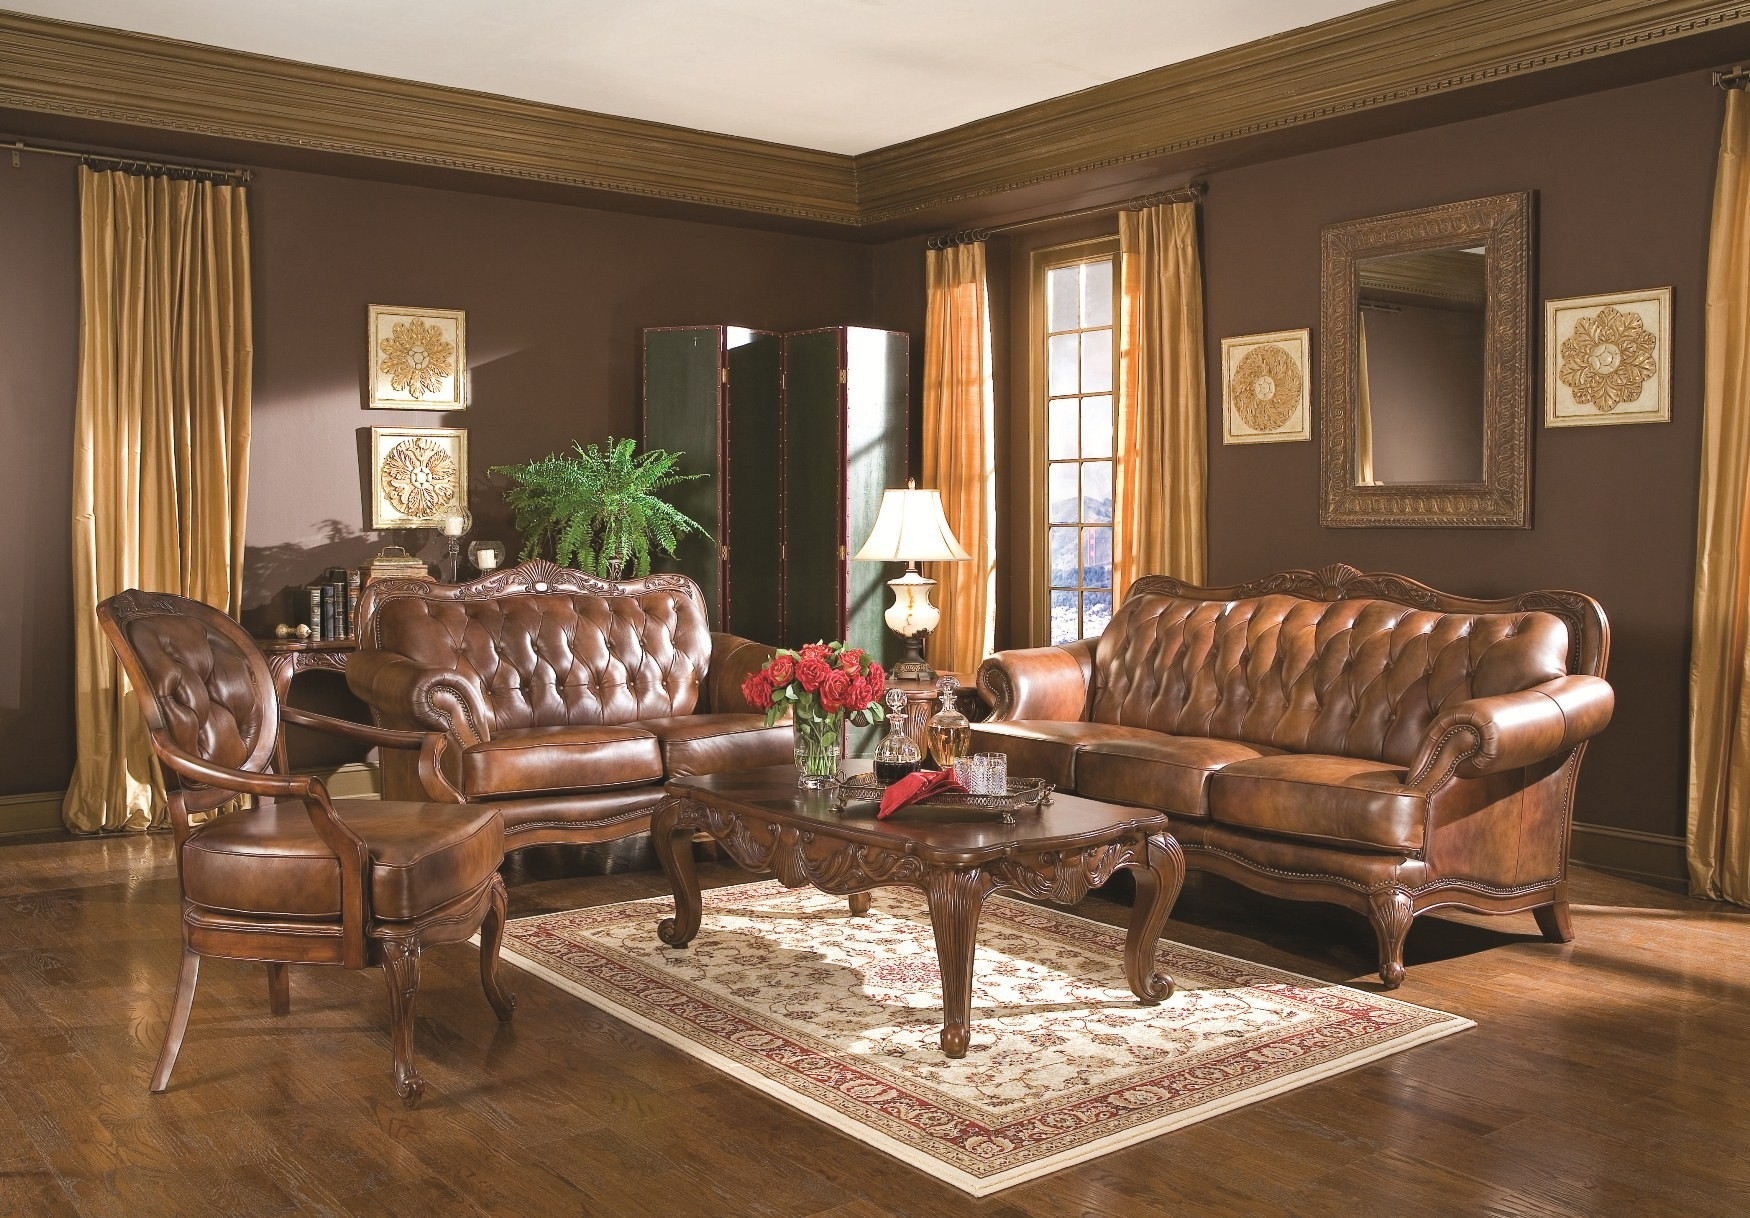 Victoria living room set 50068 from coaster 50068 coleman furniture